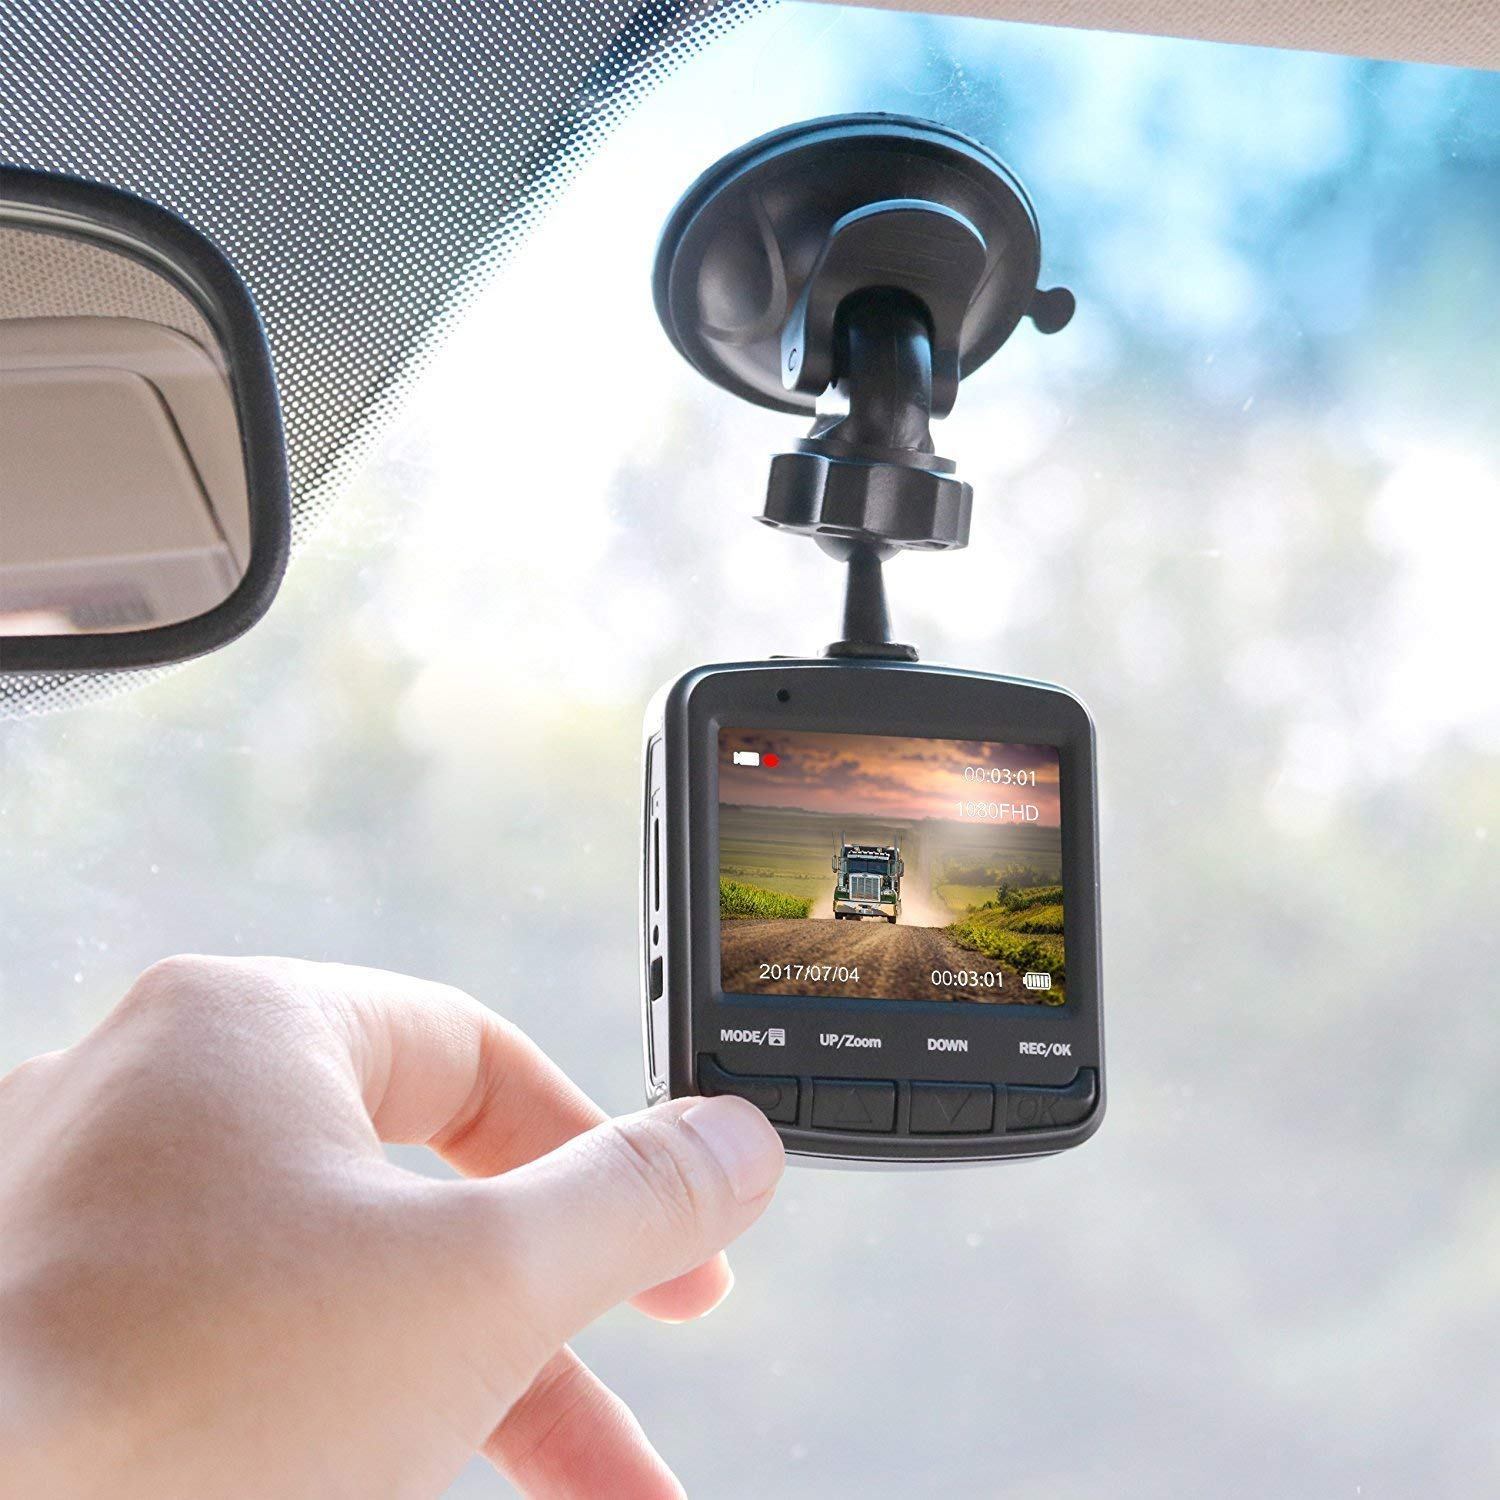 Acumen FHD 1080p Dash Cam, Car DVR Wide Angle Vehicle Dashboard Camera Recorder with Loop Recording G-Sensor, 16GB Memory Card Included